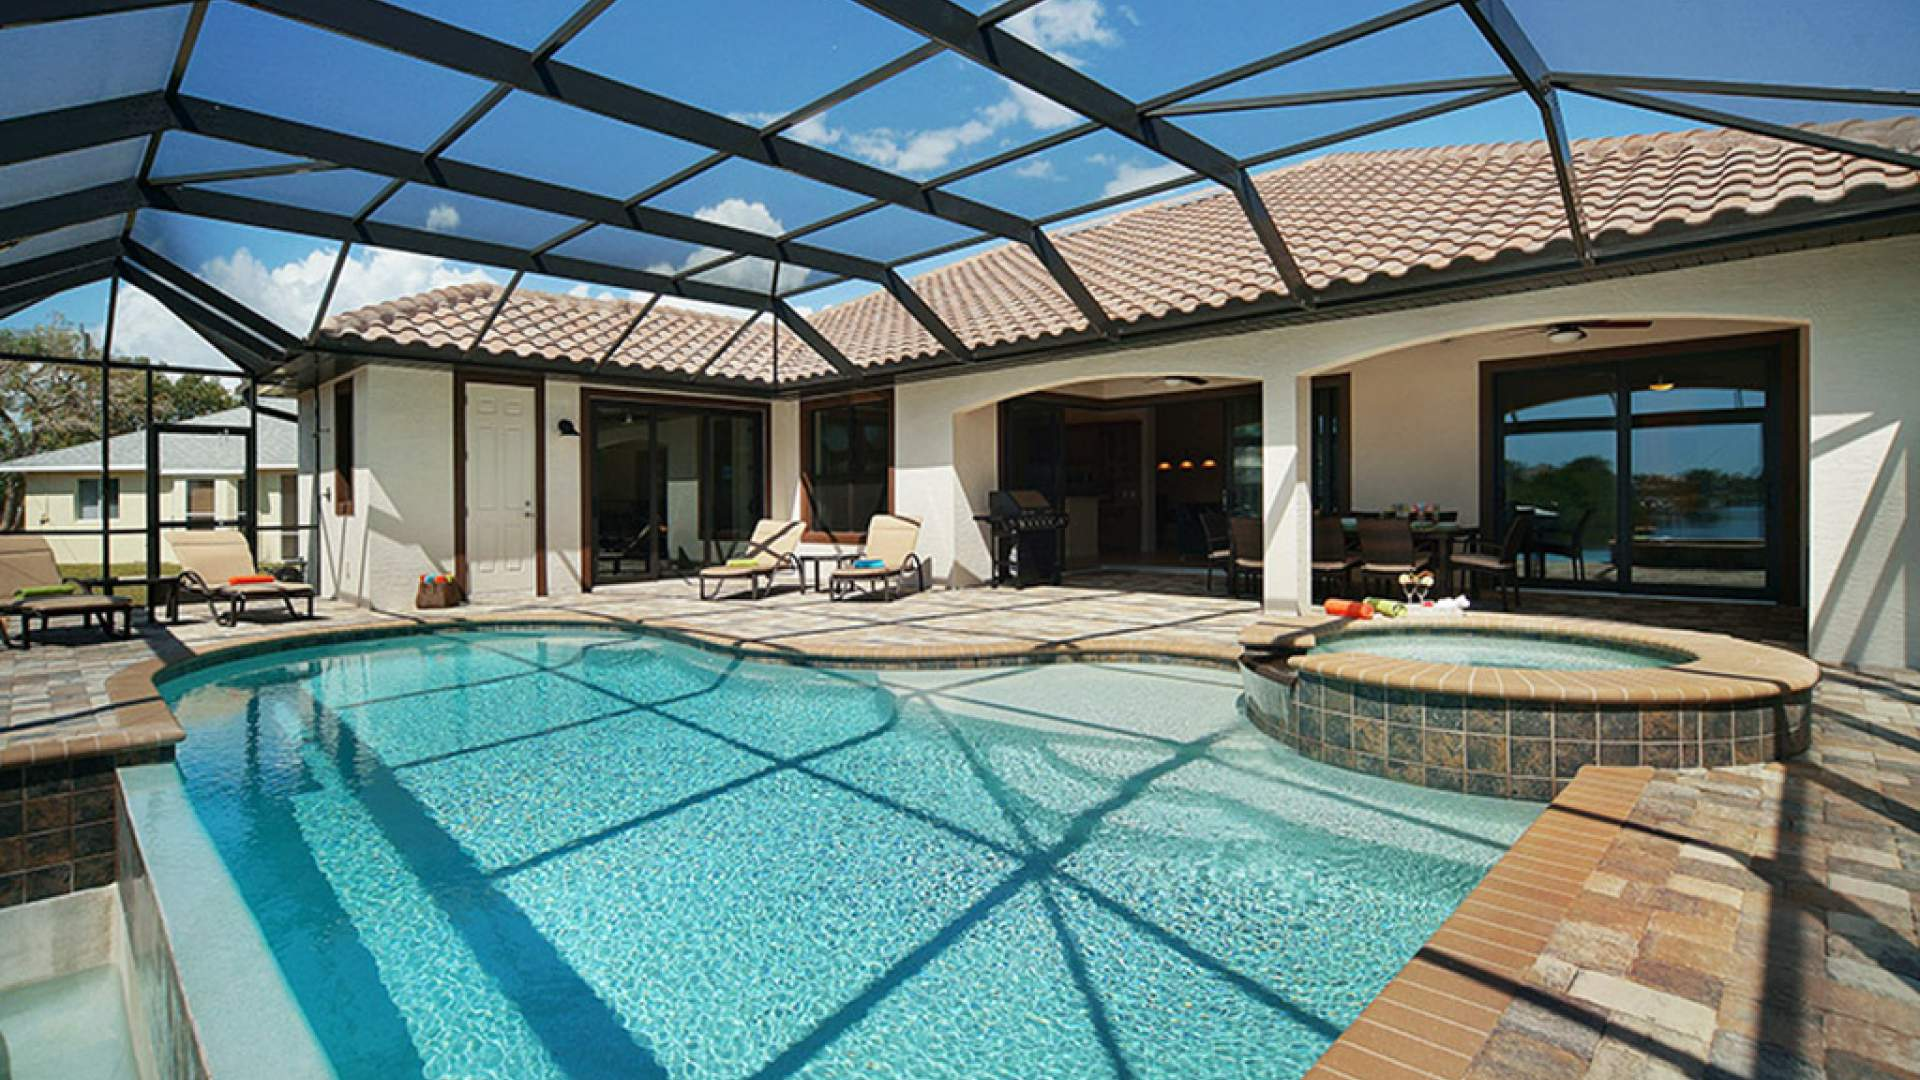 The large pool area includes a covered patio and sundeck, pool and spa